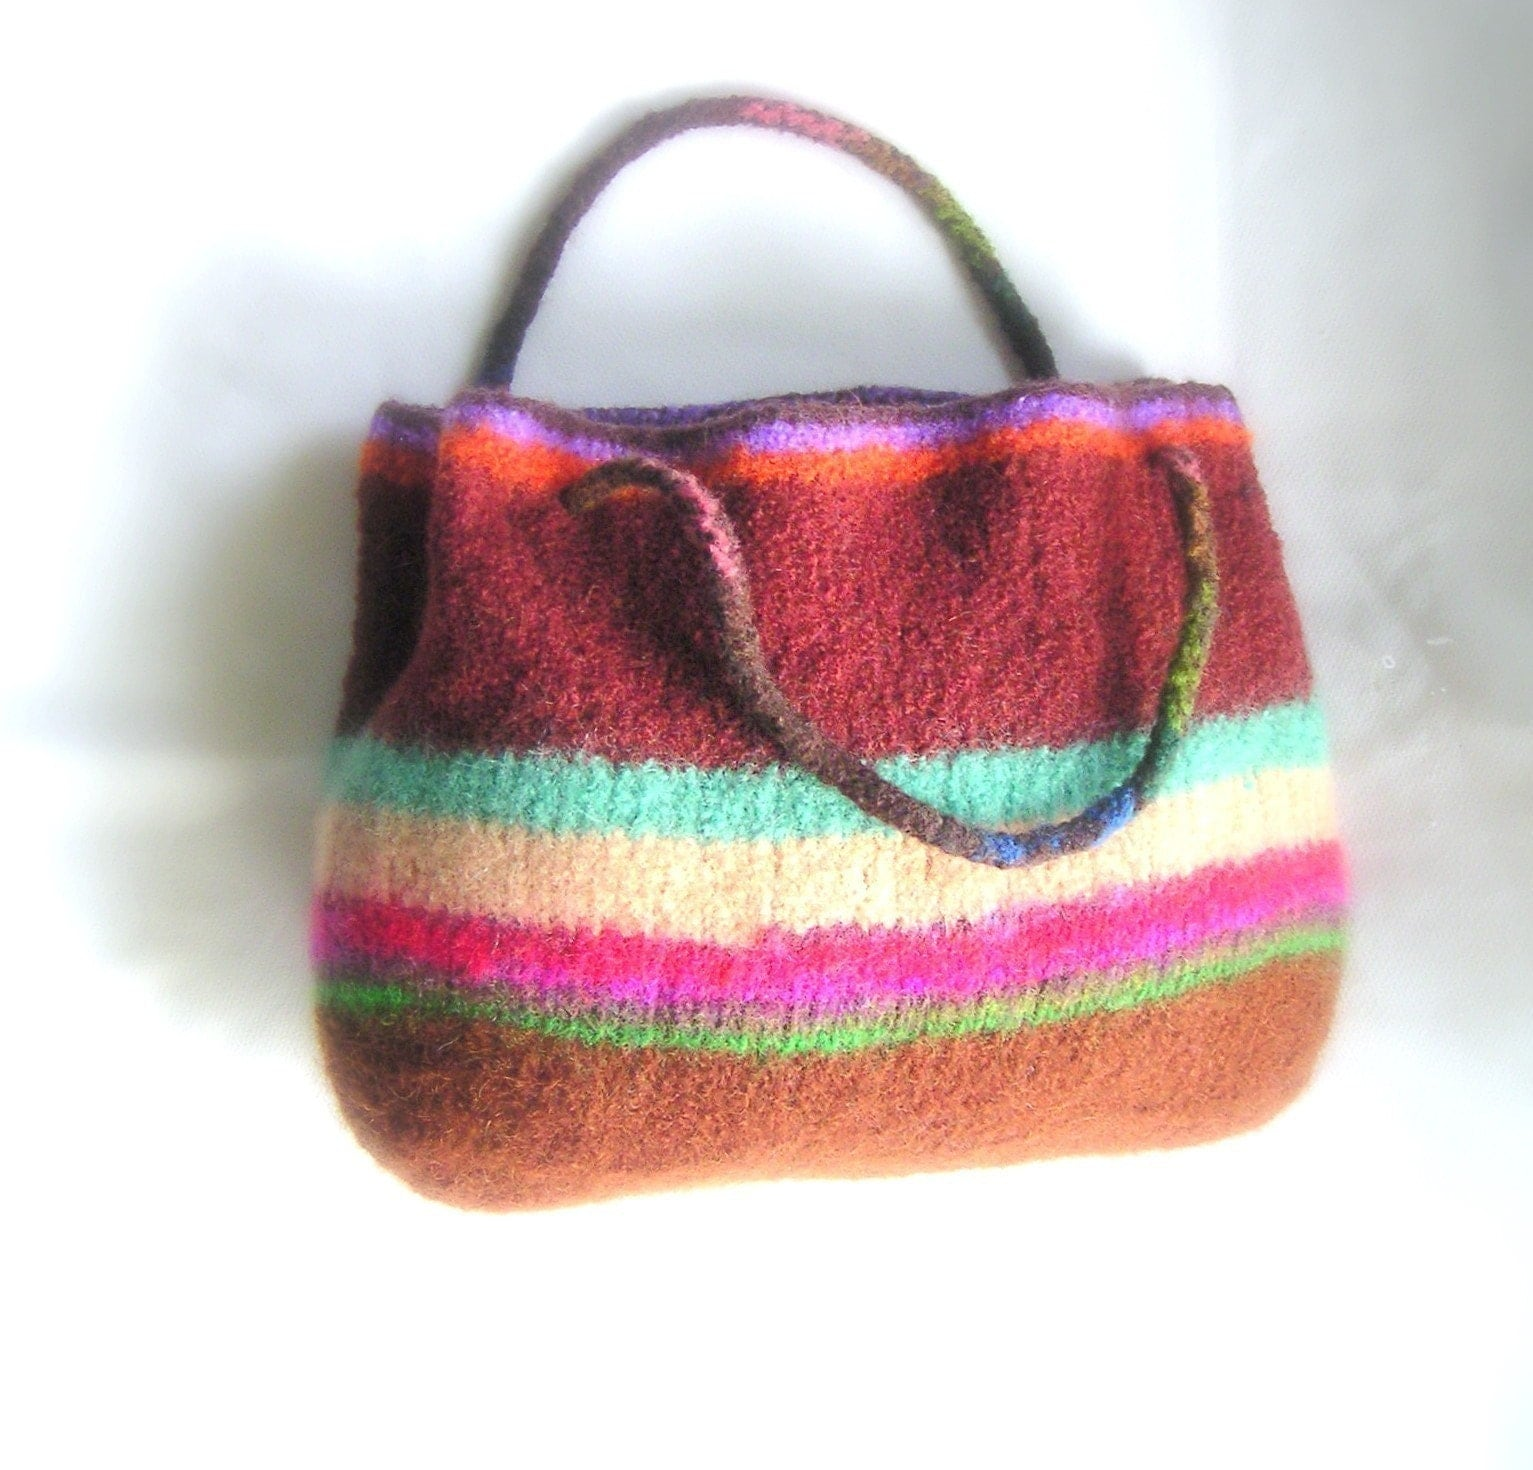 Knitted Tote Bag Pattern : Easy Knit Felted Pattern pdf Tote Bag by GraceKnittingPattern